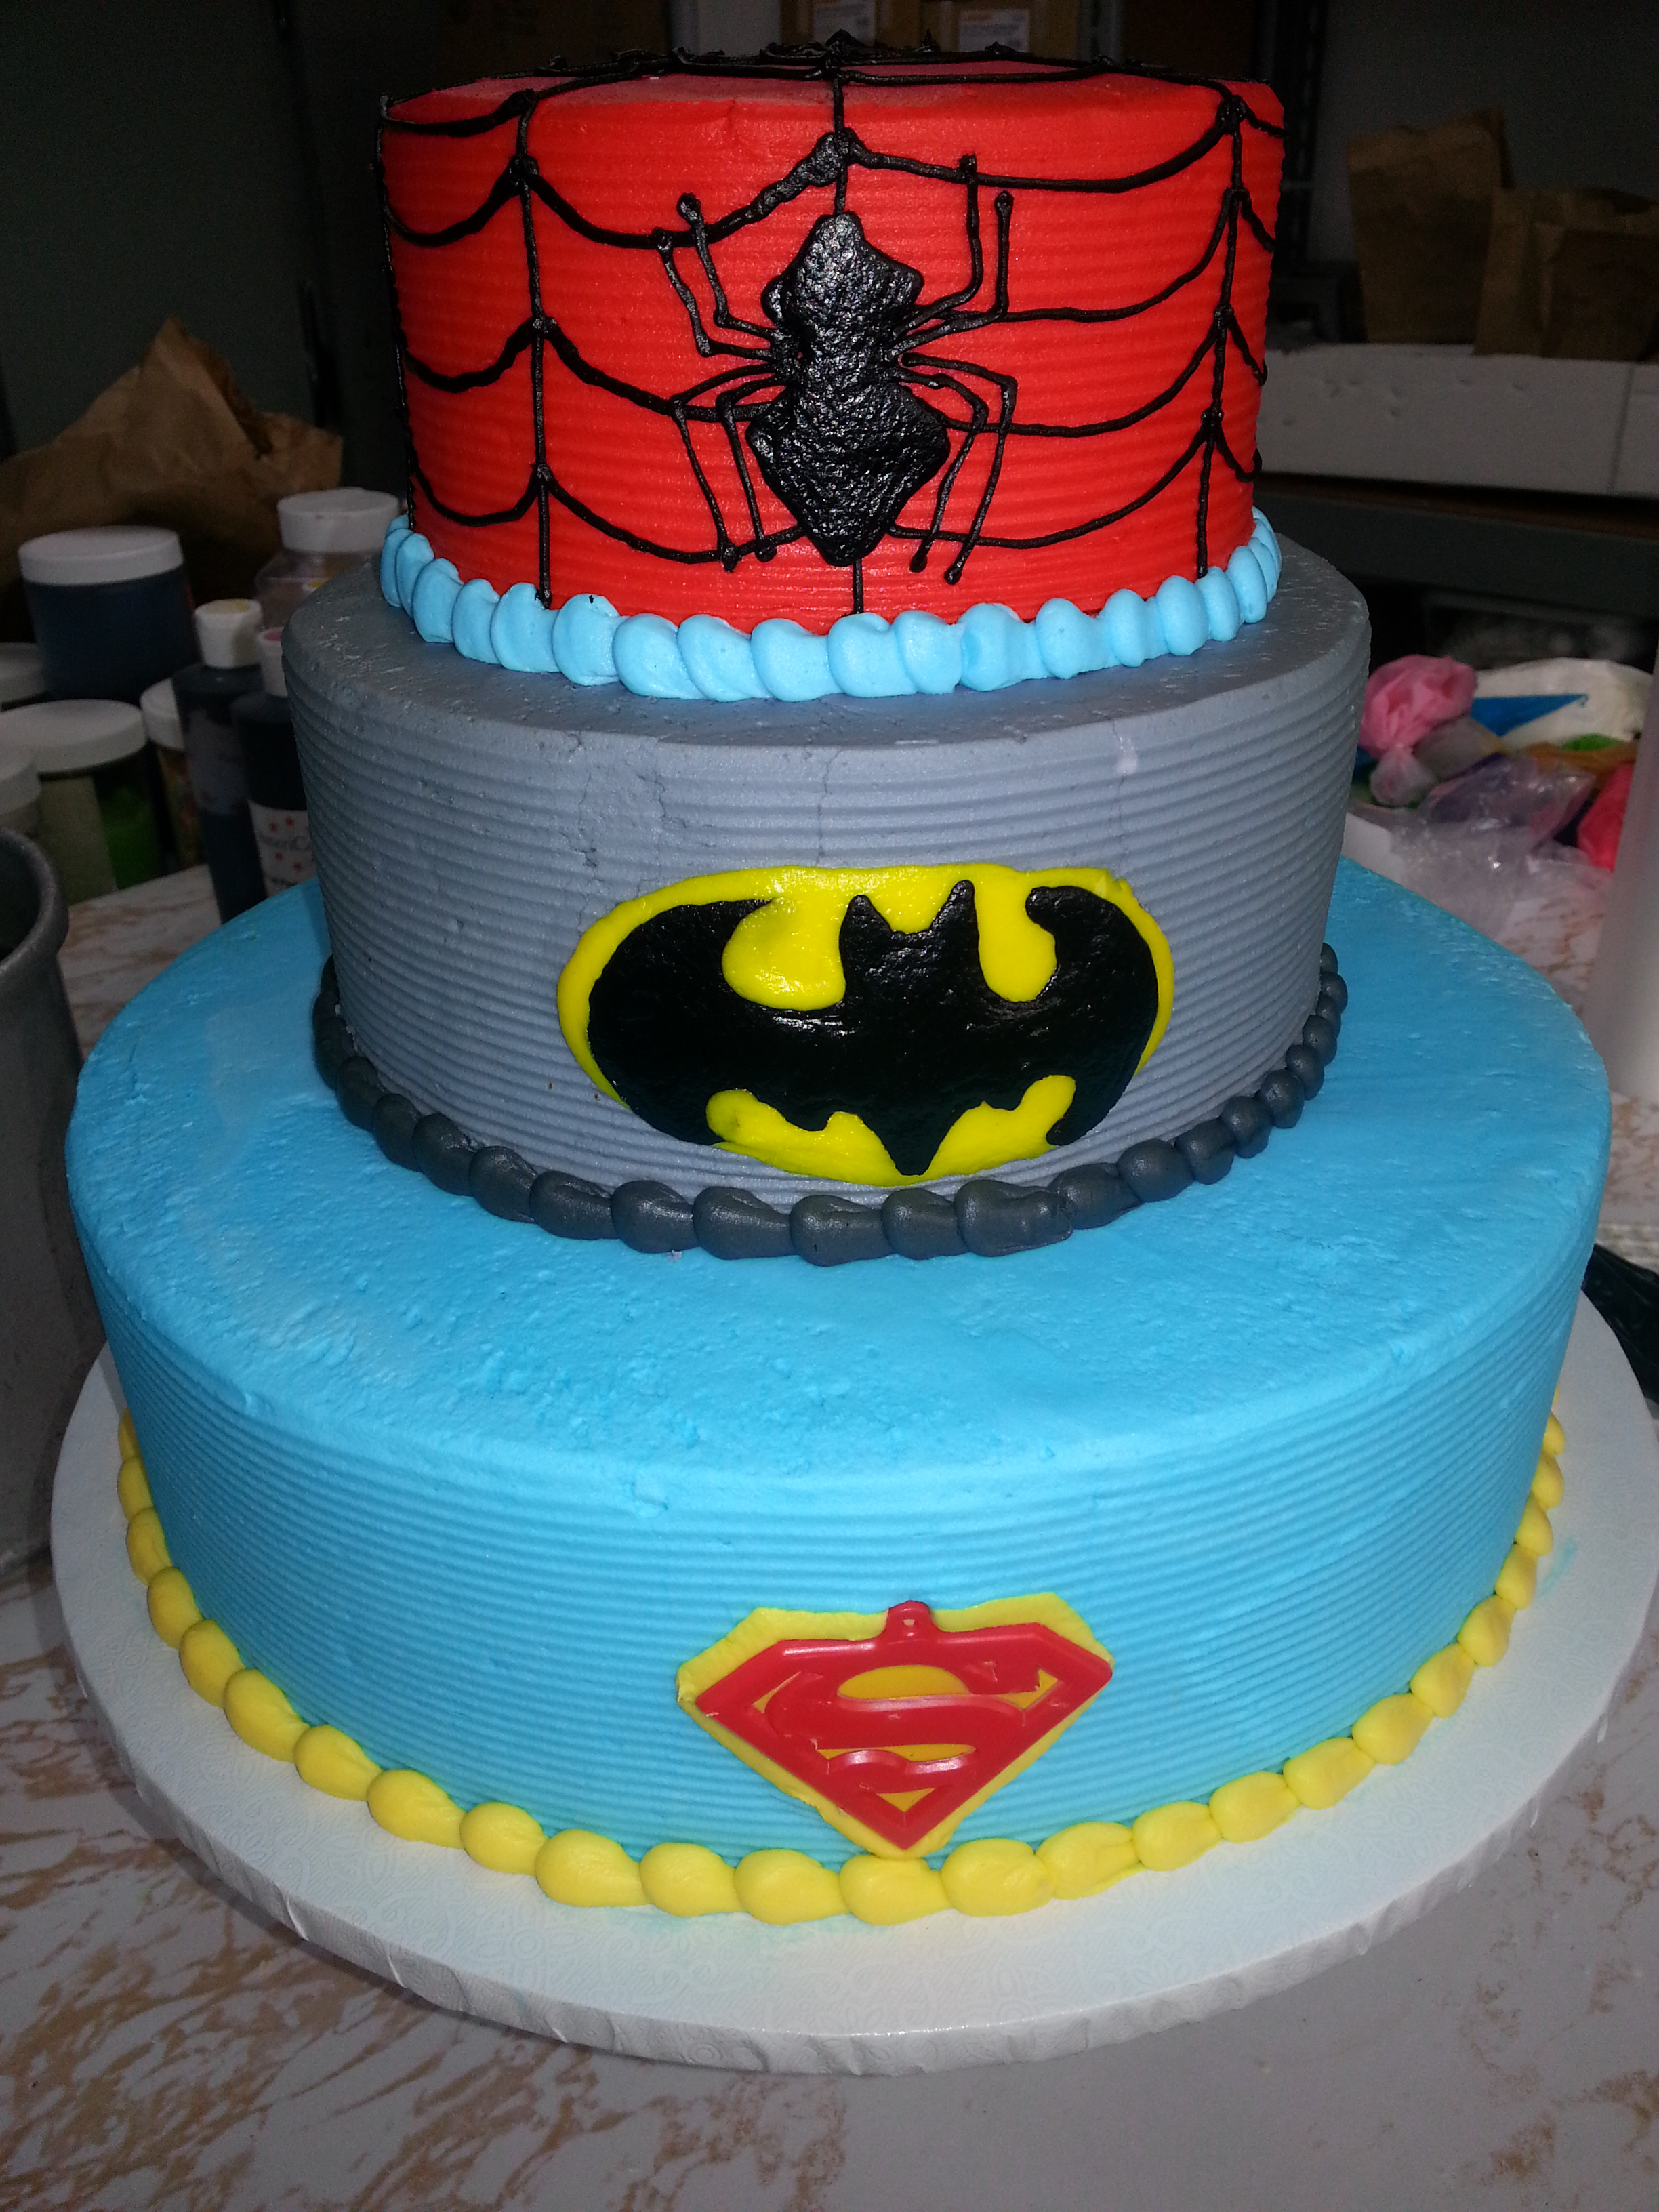 Spider Bat Super men cake